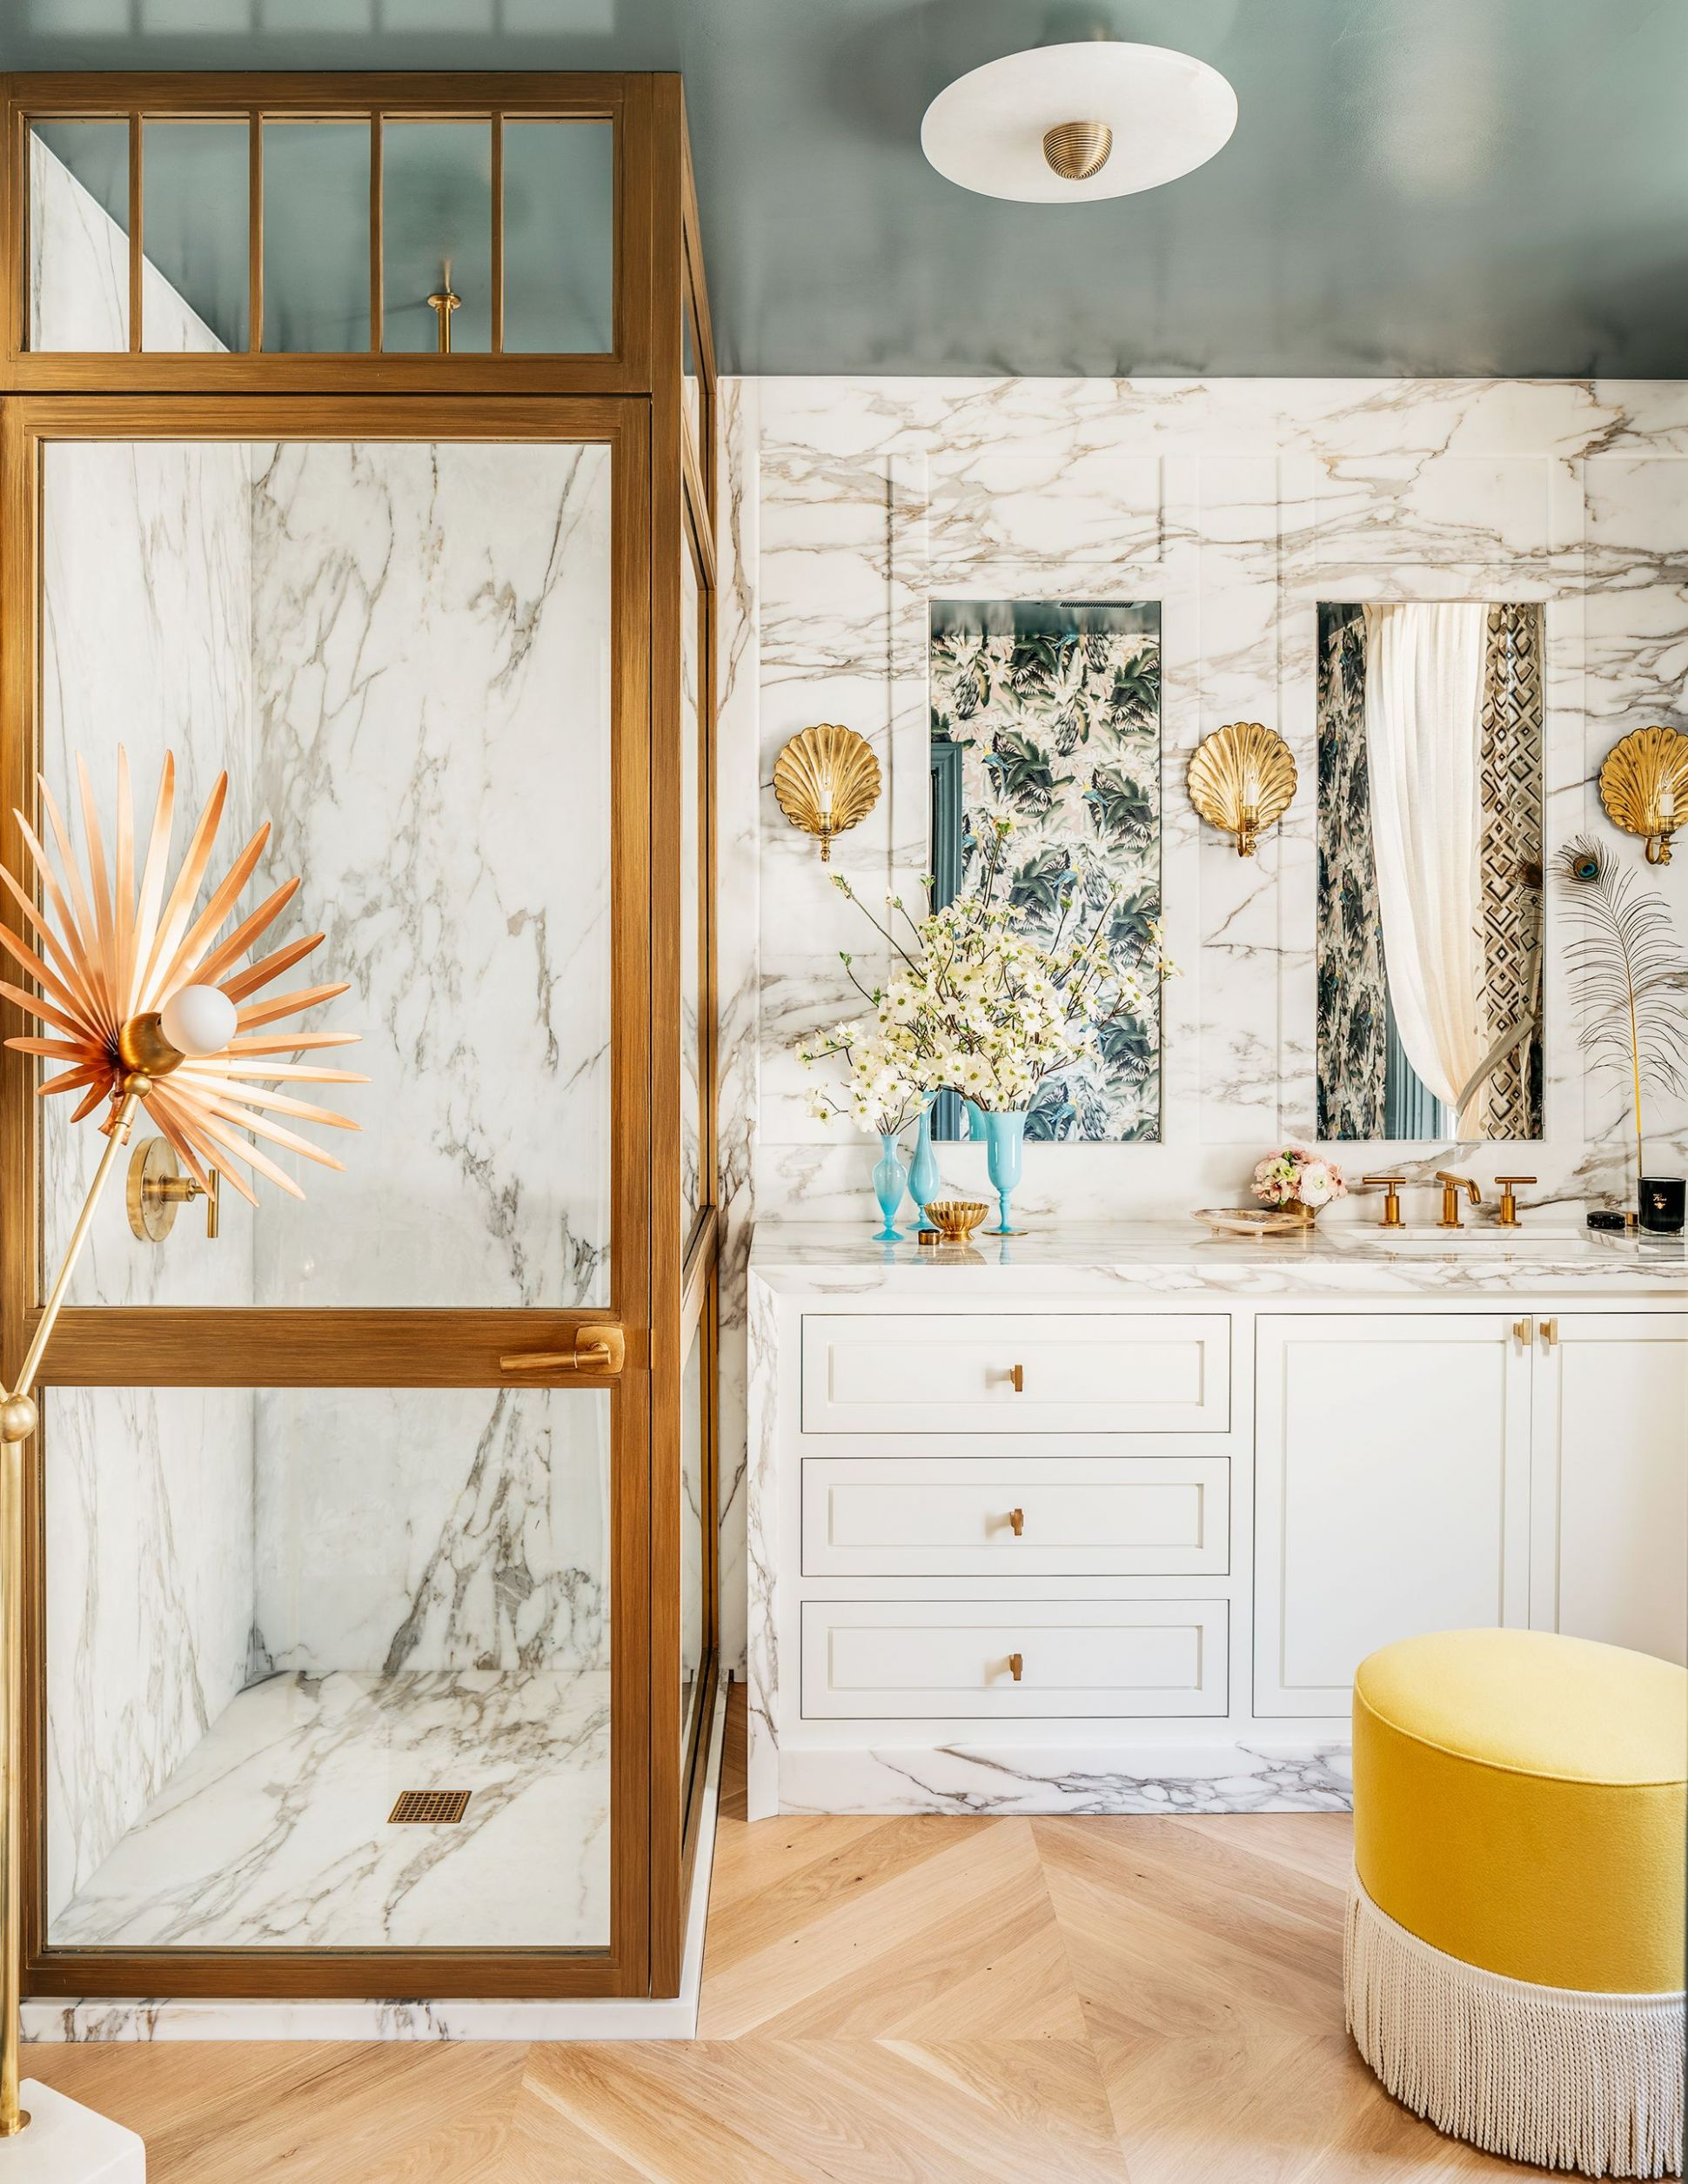 10+ Best Bathroom Designs - Photos of Beautiful Bathroom Ideas to Try